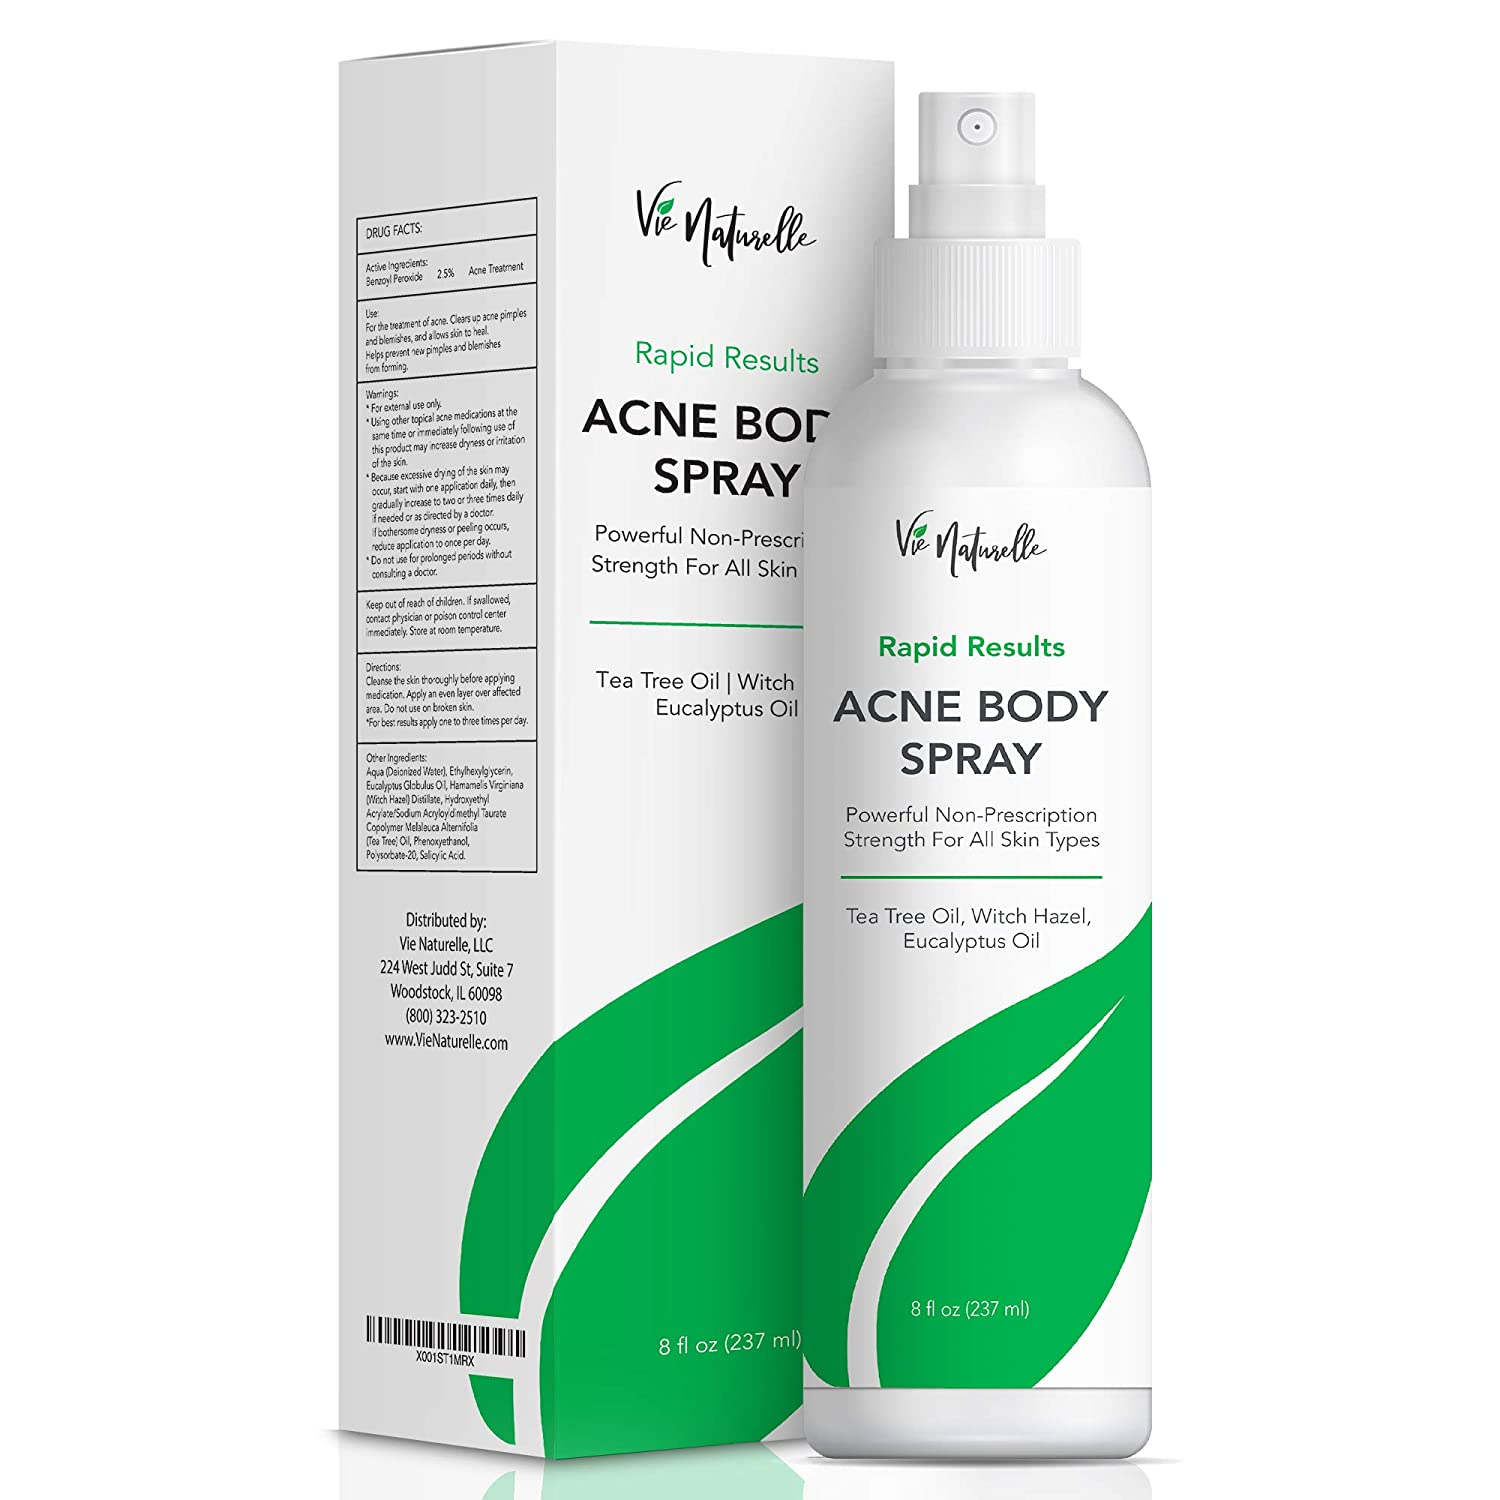 Amazon Com Body Acne Spray Treatment With Tea Tree Oil And Salicylic Acid For Men Women And Teens Powerful Non Prescription Strength Exfoliating Spray For All Skin Types 2 5 Benzoyl Peroxide Beauty